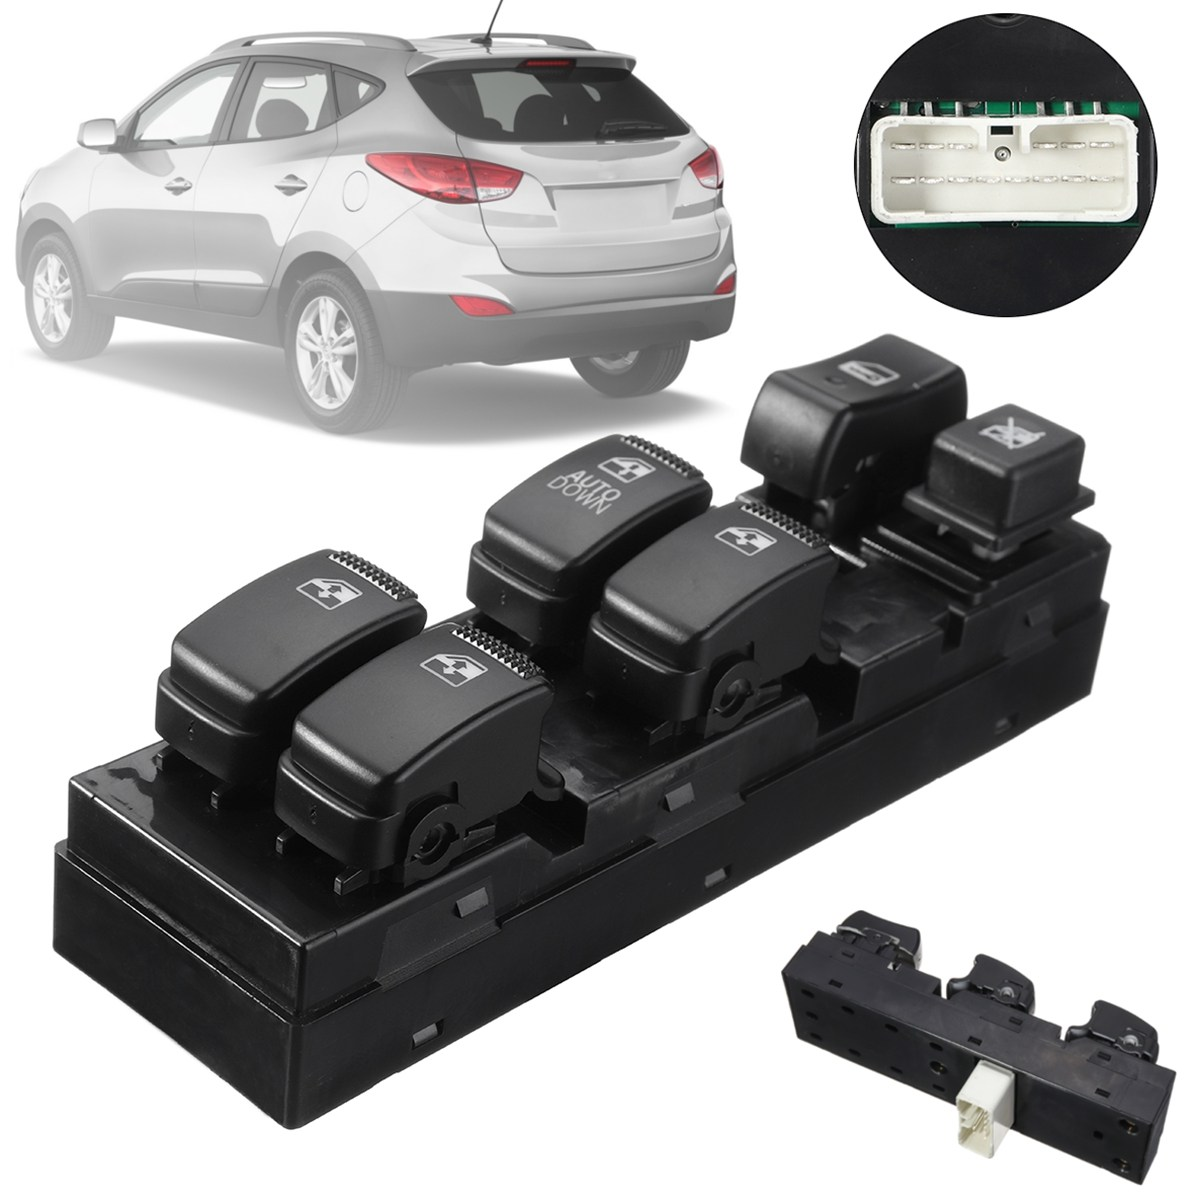 #93570-2E000 #935702E000 #WSHY009 ABS Front Left Driver Side Electric Power Window Switch For Hyundai Tucson 2009 2010 2008 2007 for hyundai elantra front left driver side master power window switch 2001 02 03 04 05 2006 93570 2d000